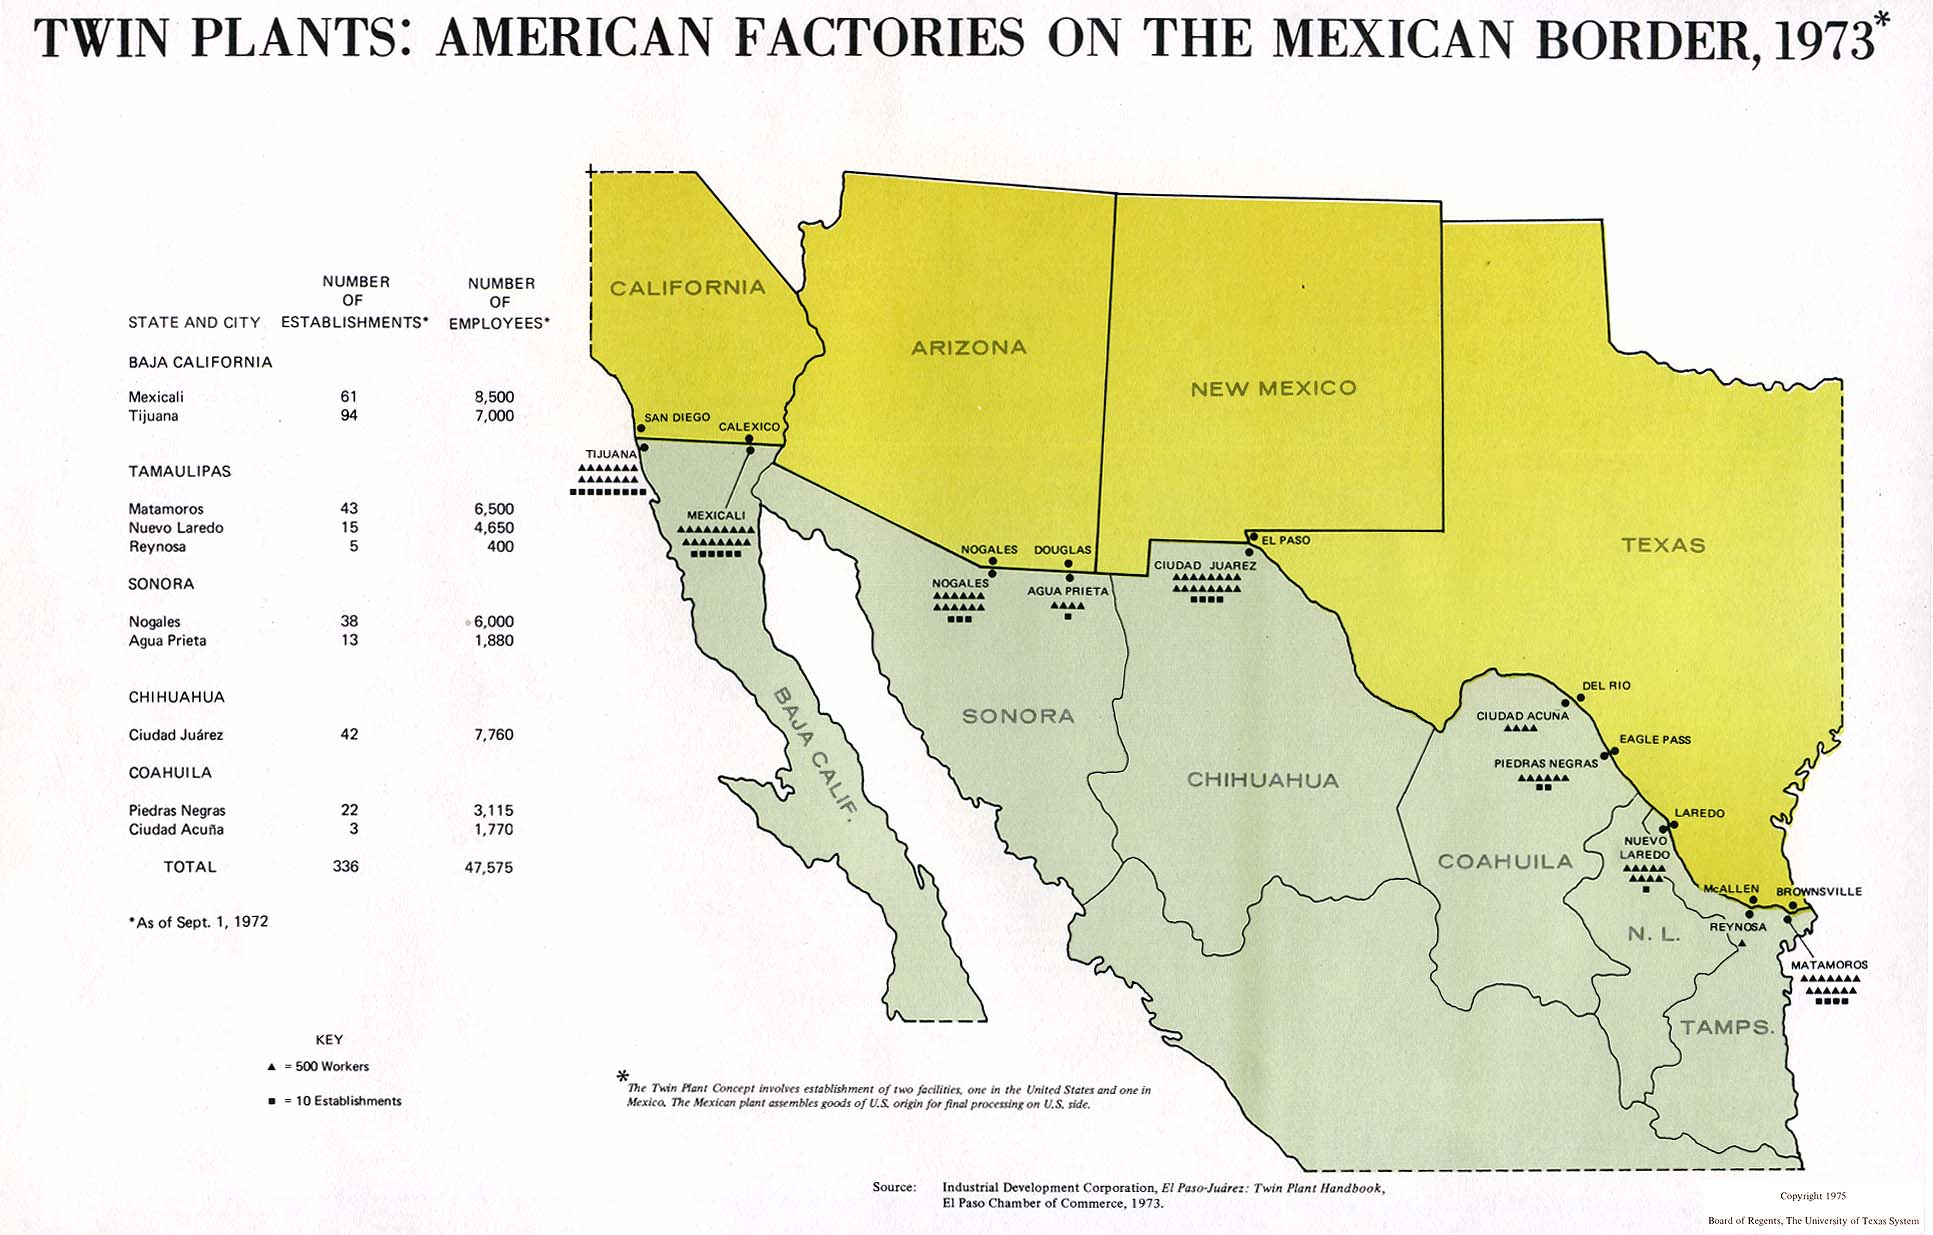 Twin Plants: American Factories on the Mexican Border 1975